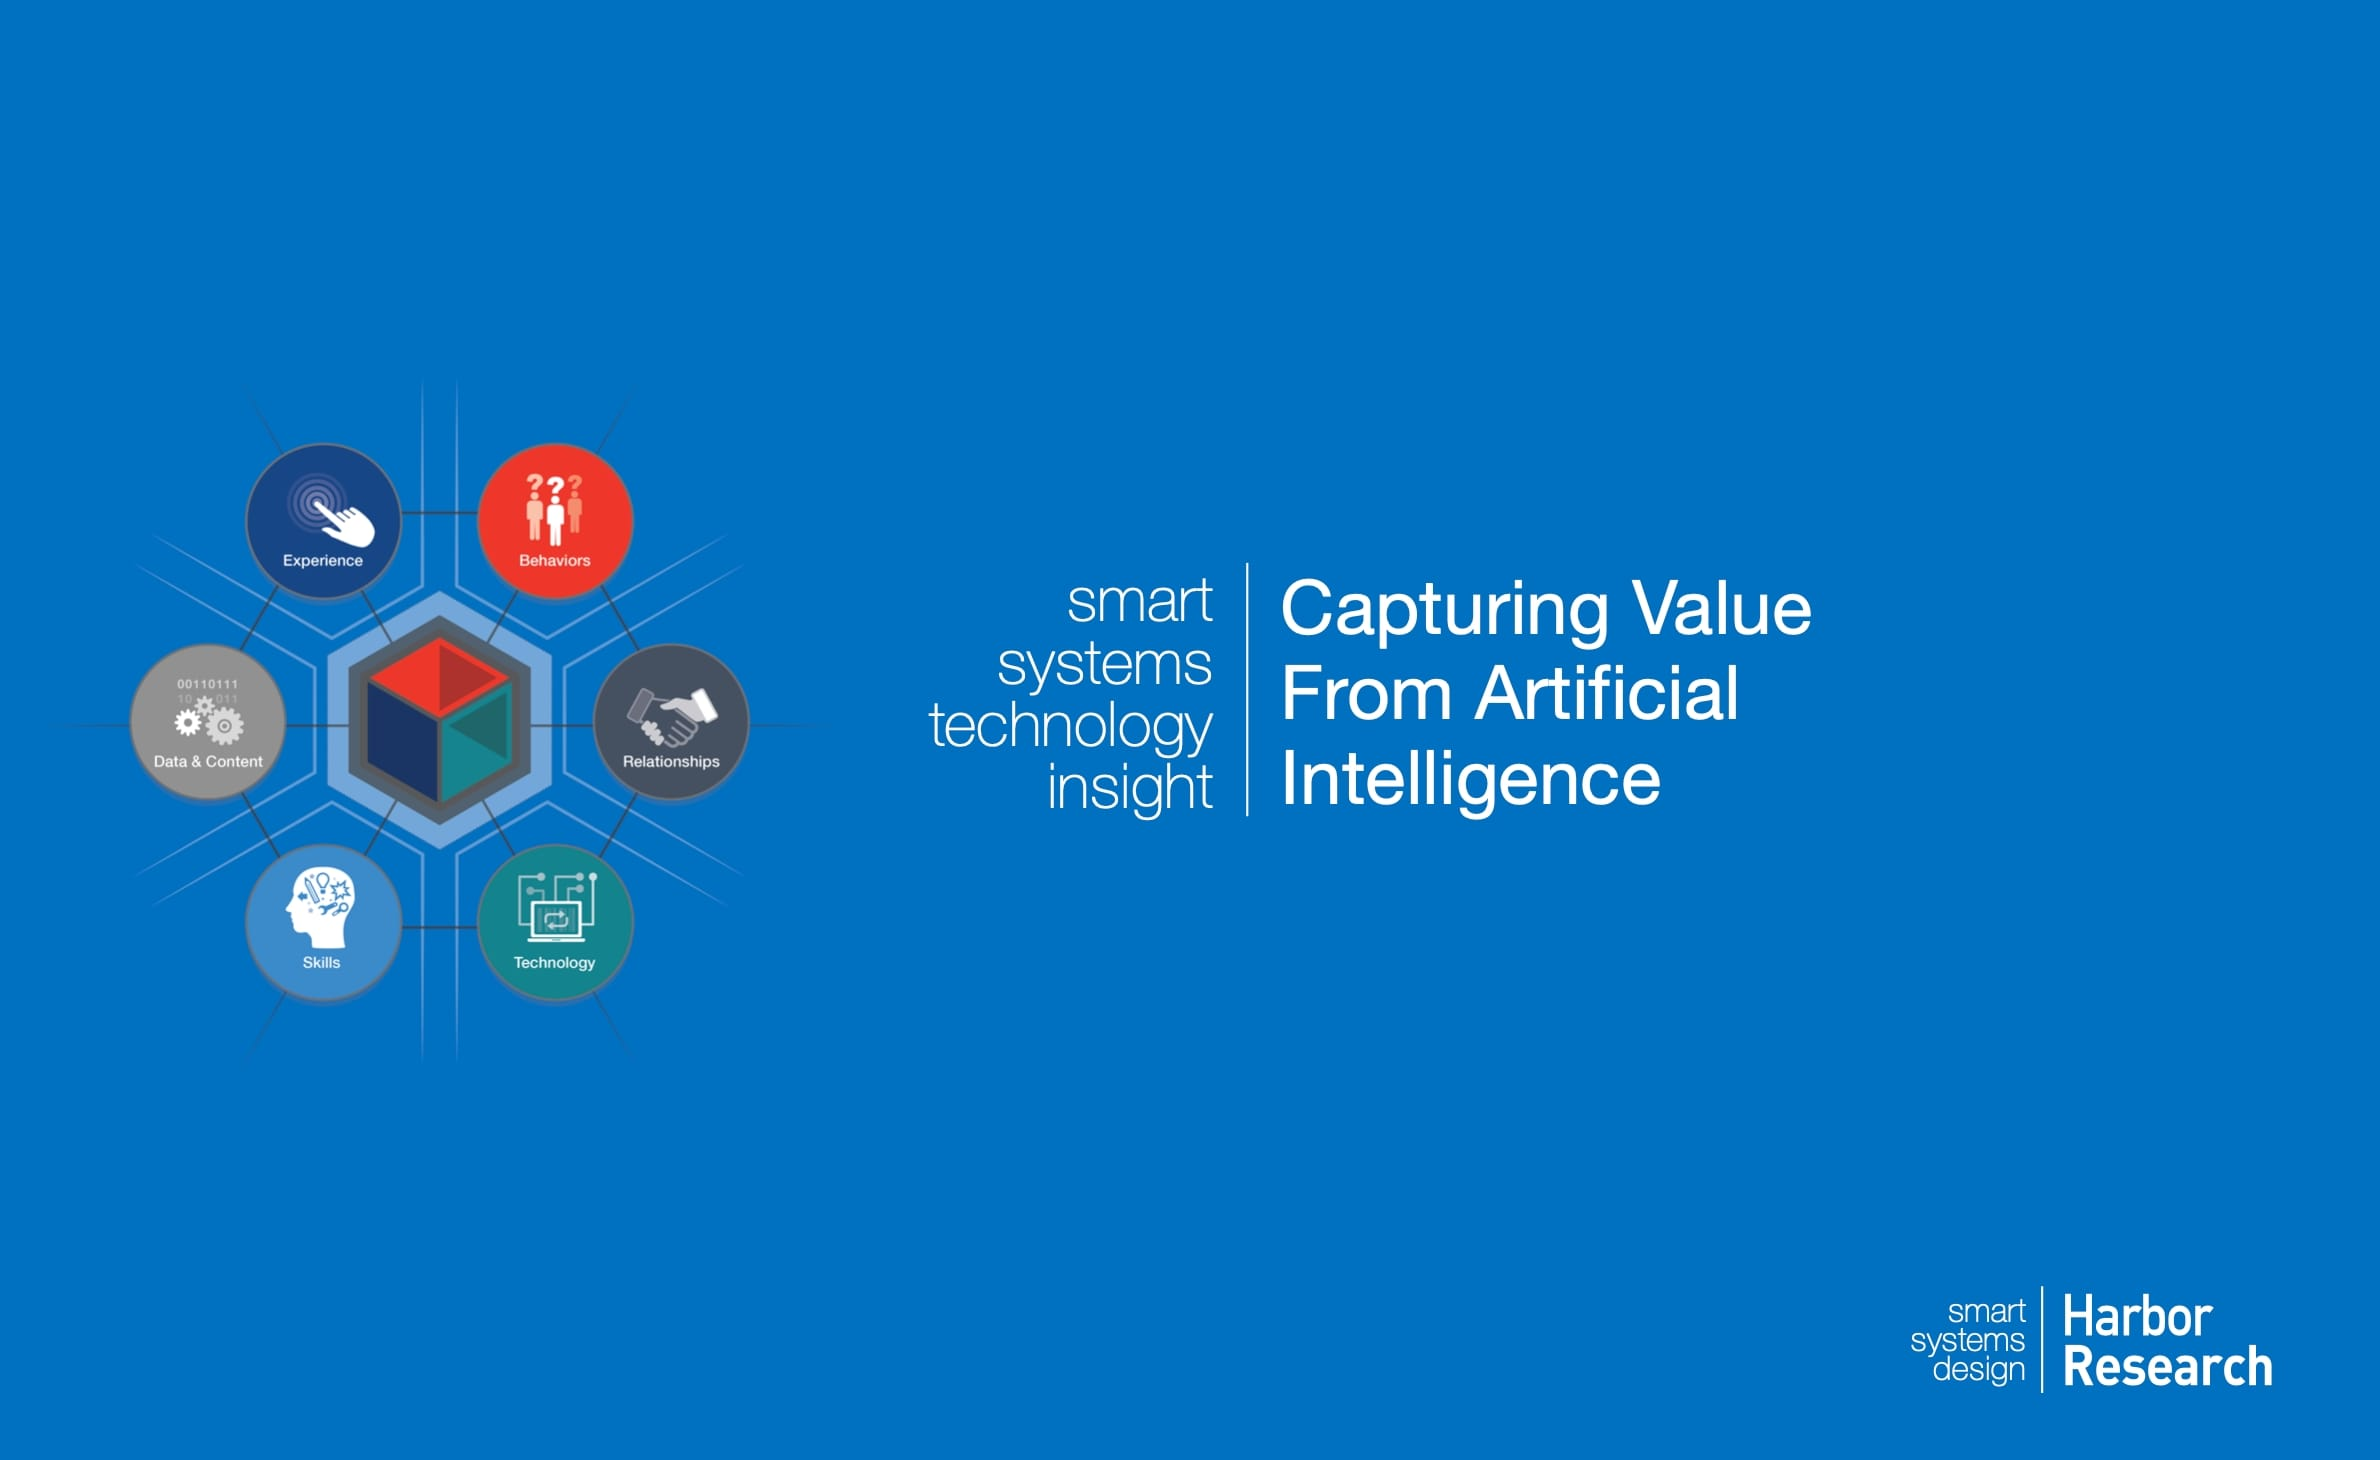 Capturing Value from AI cover